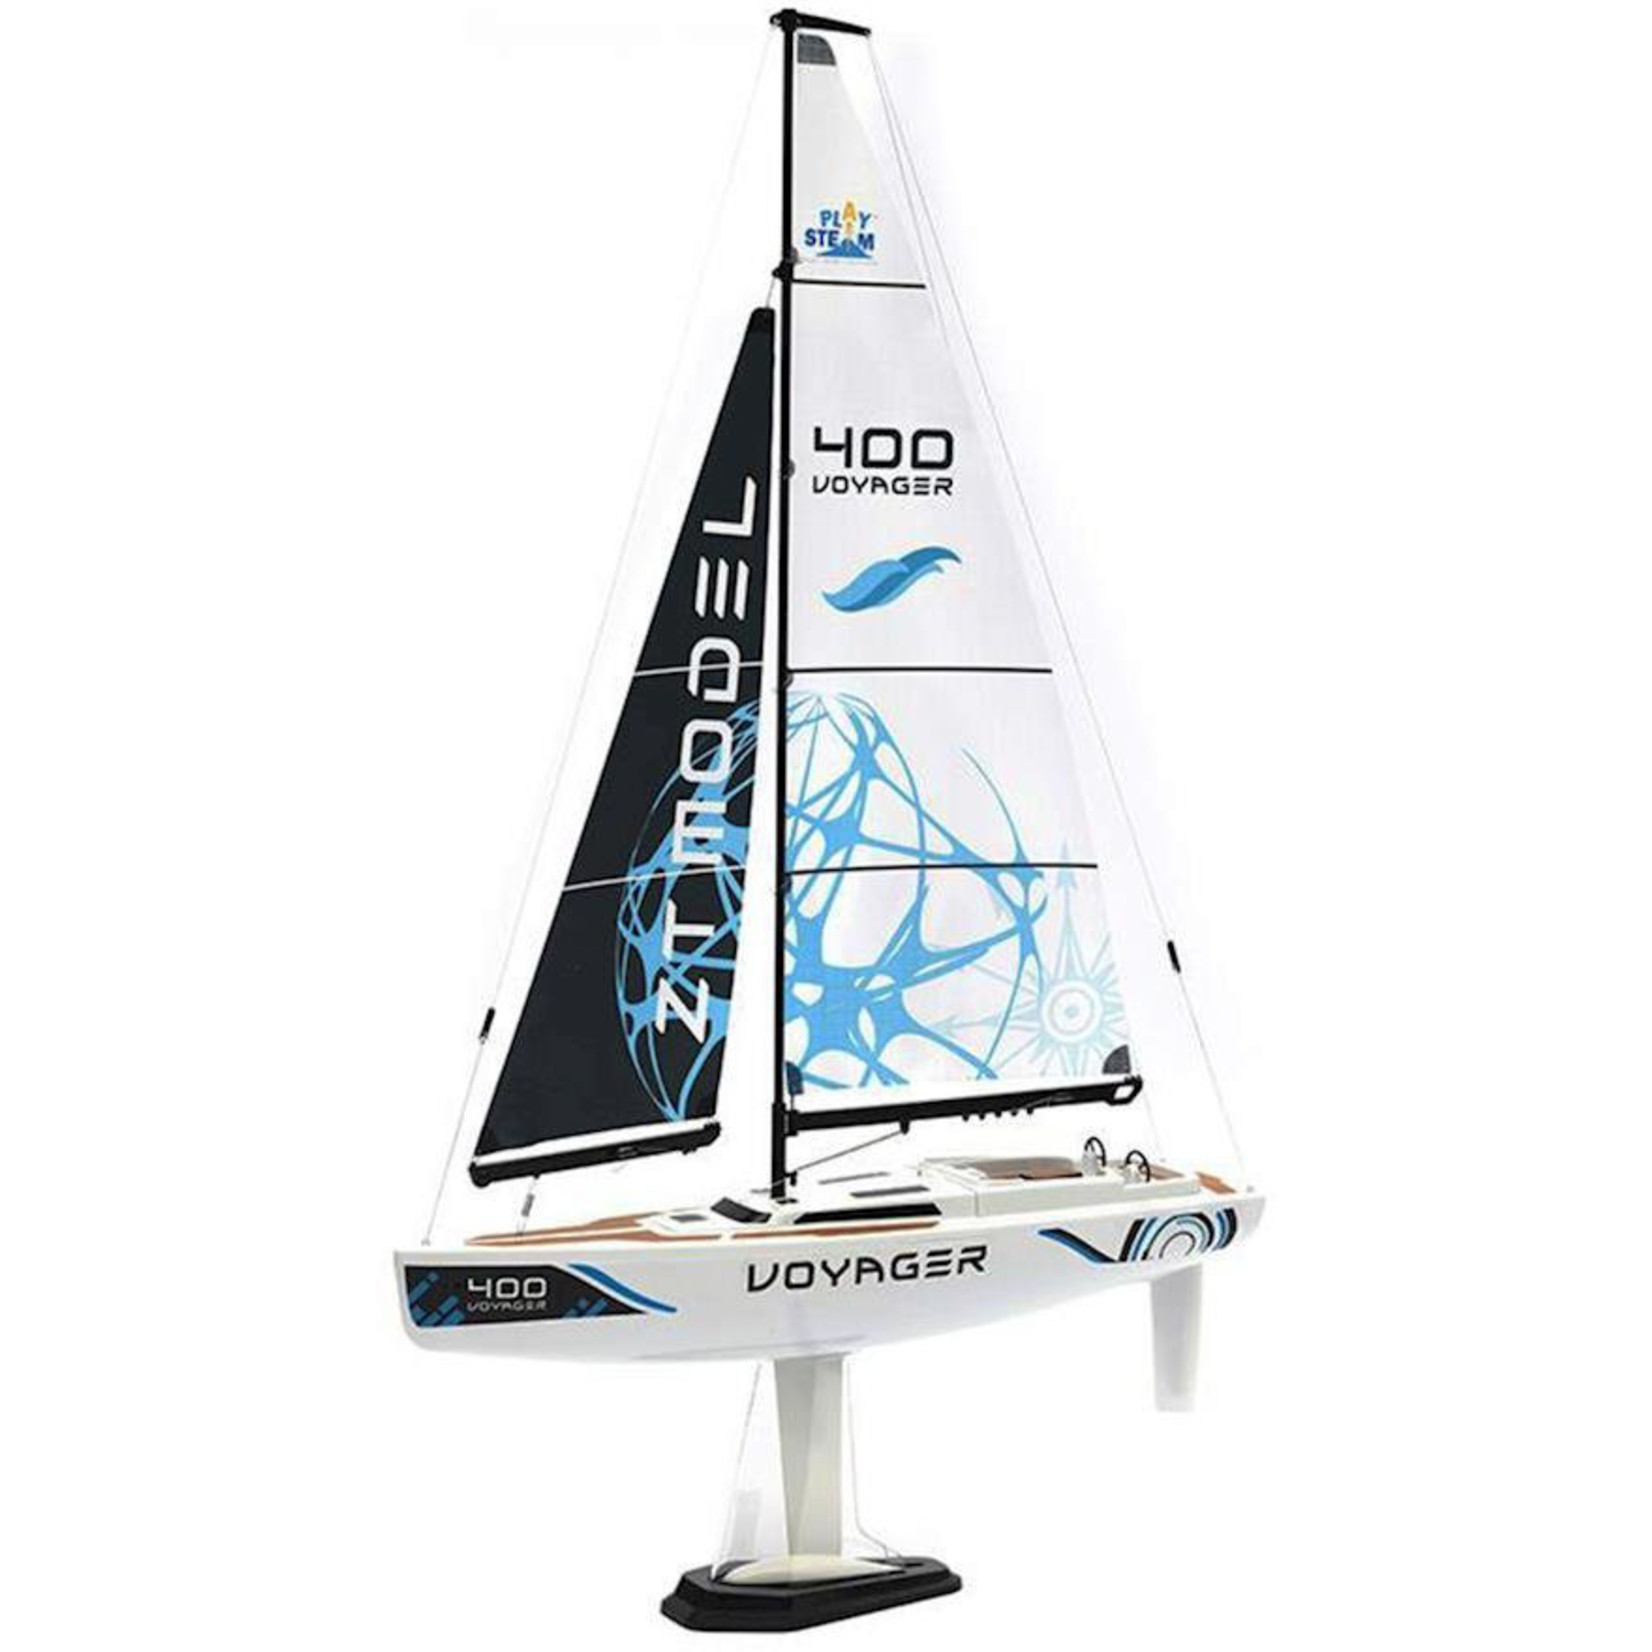 PLAY STEAM VOYAGER 400 BLUE